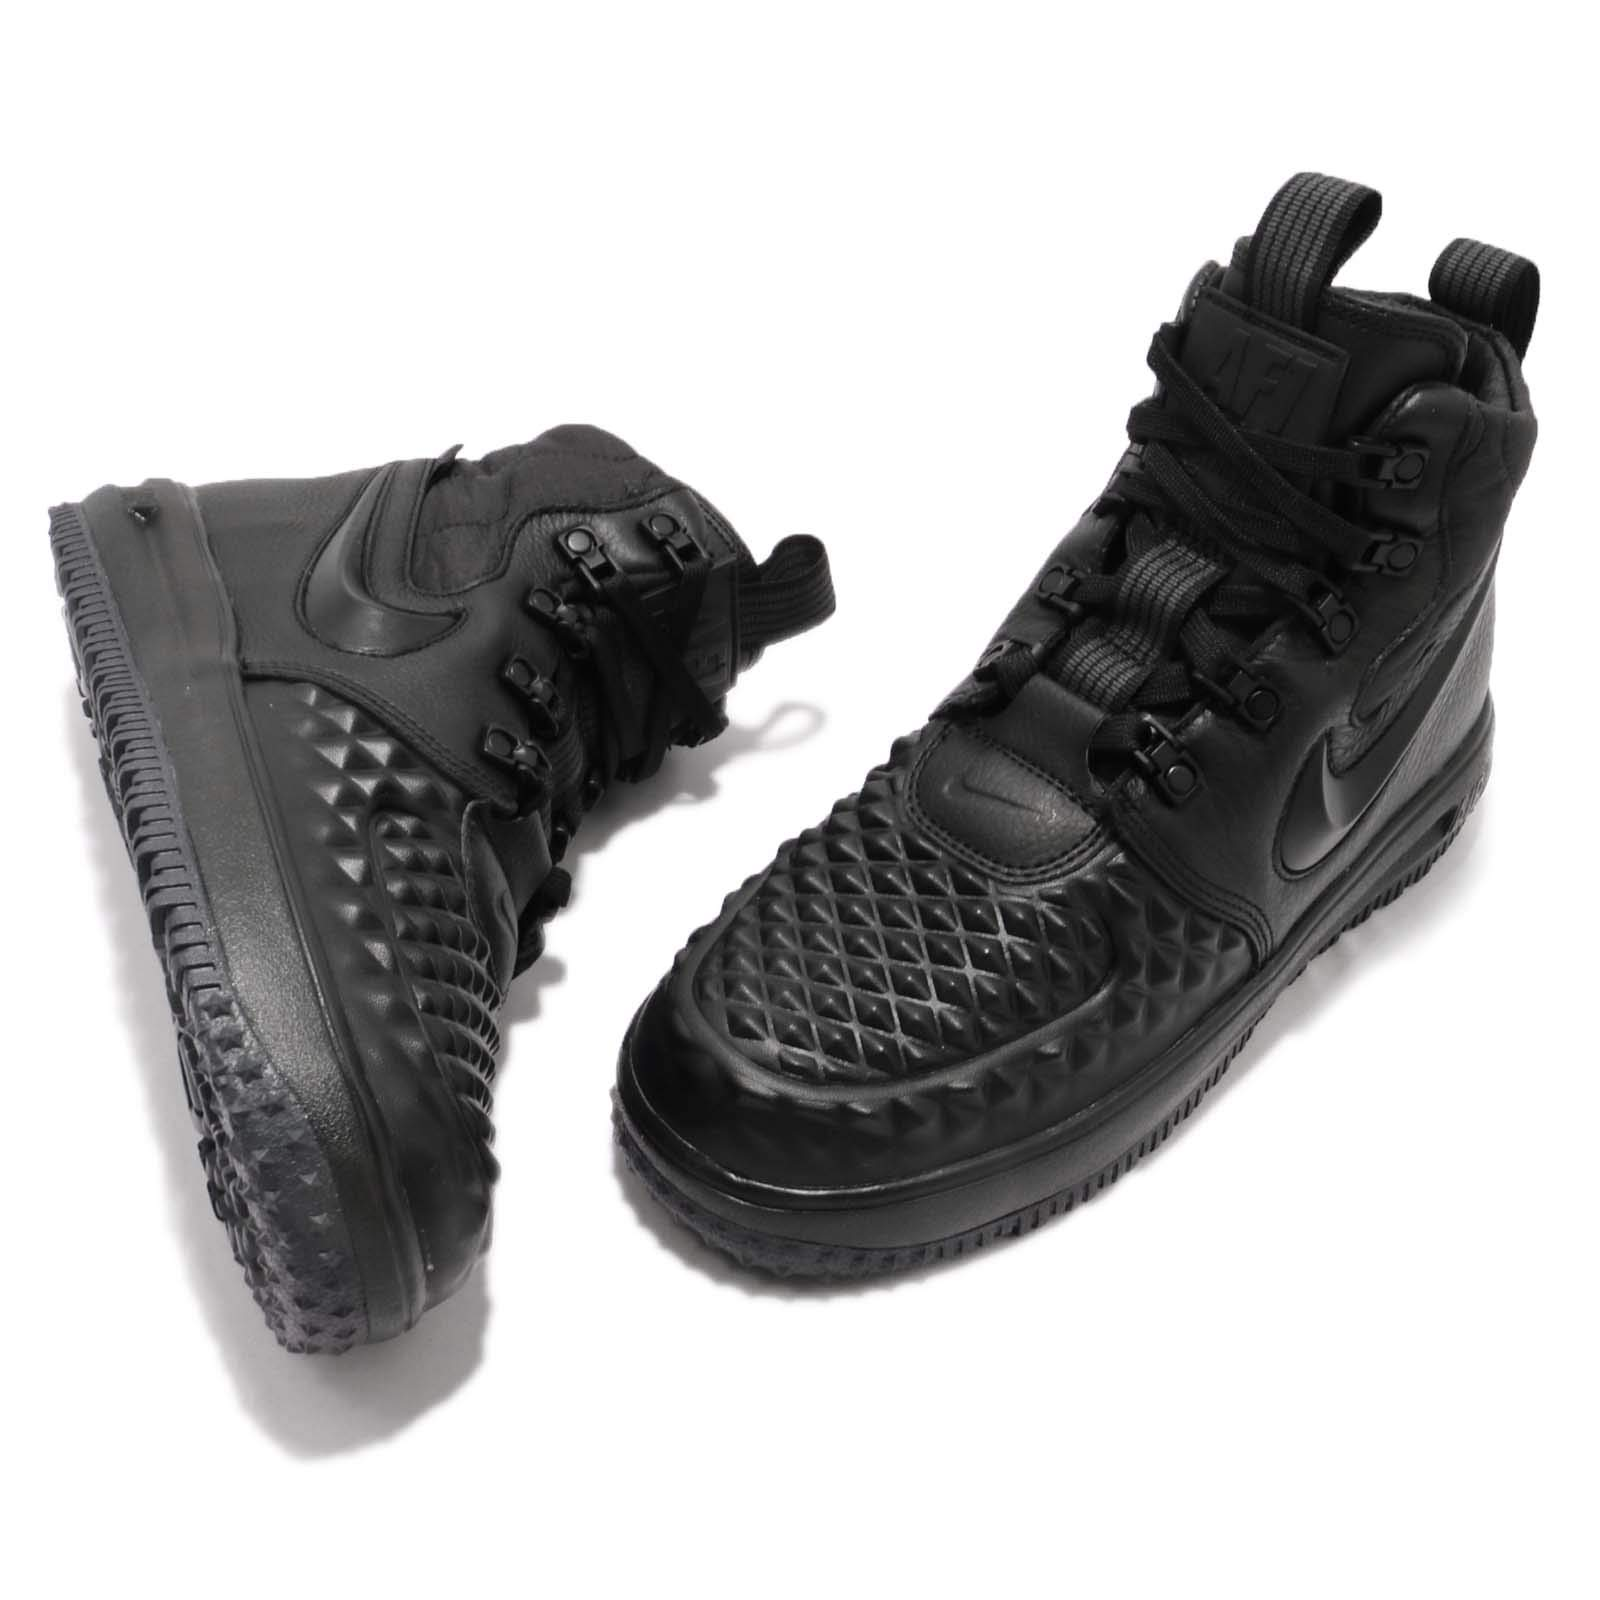 Nike Kid's LF1 Duckboot 17 GS, Black/Black-Anthracite, Youth Size 3.5 by Nike (Image #7)